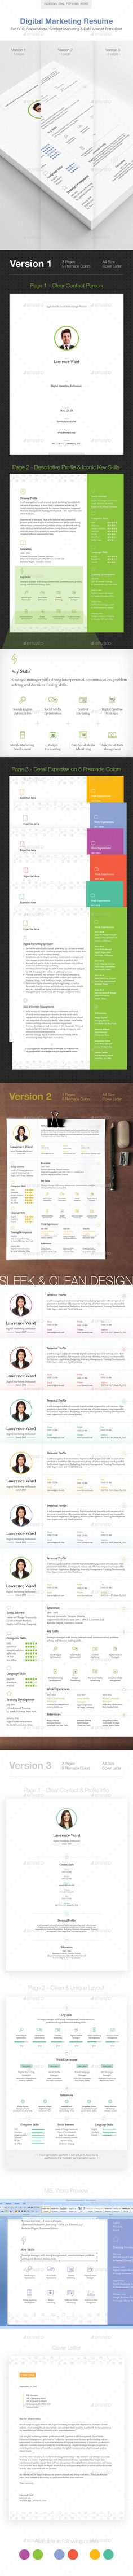 Marketer Resume  InDesign Template • Download ➝ https://graphicriver.net/item/marketer-resume/13157906?ref=pxcr